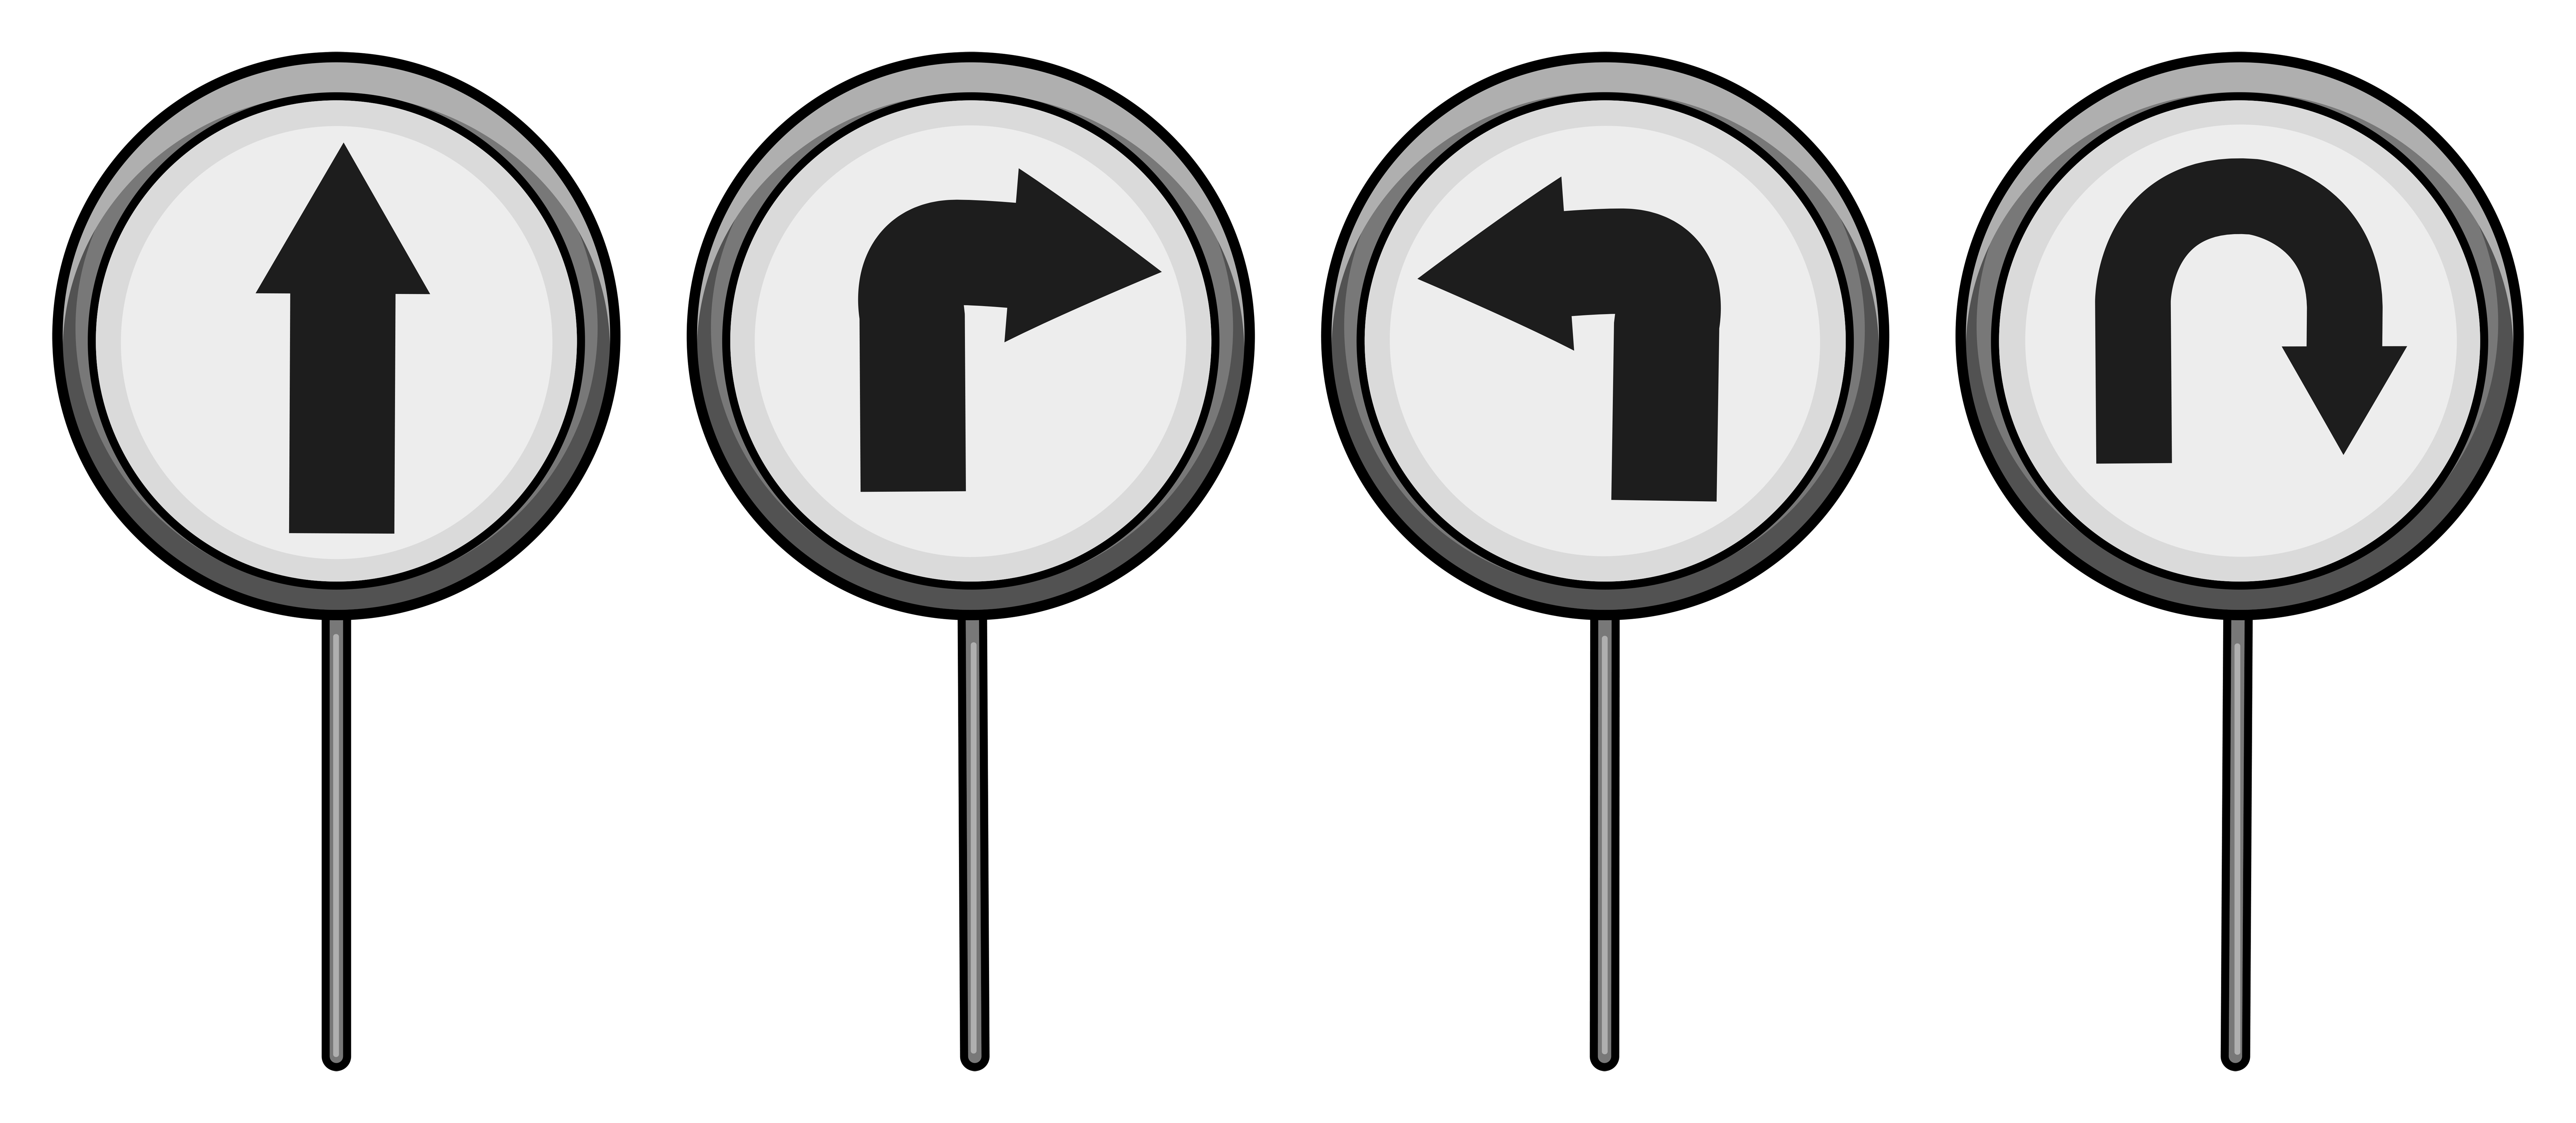 Directional Signage Free Vector Art